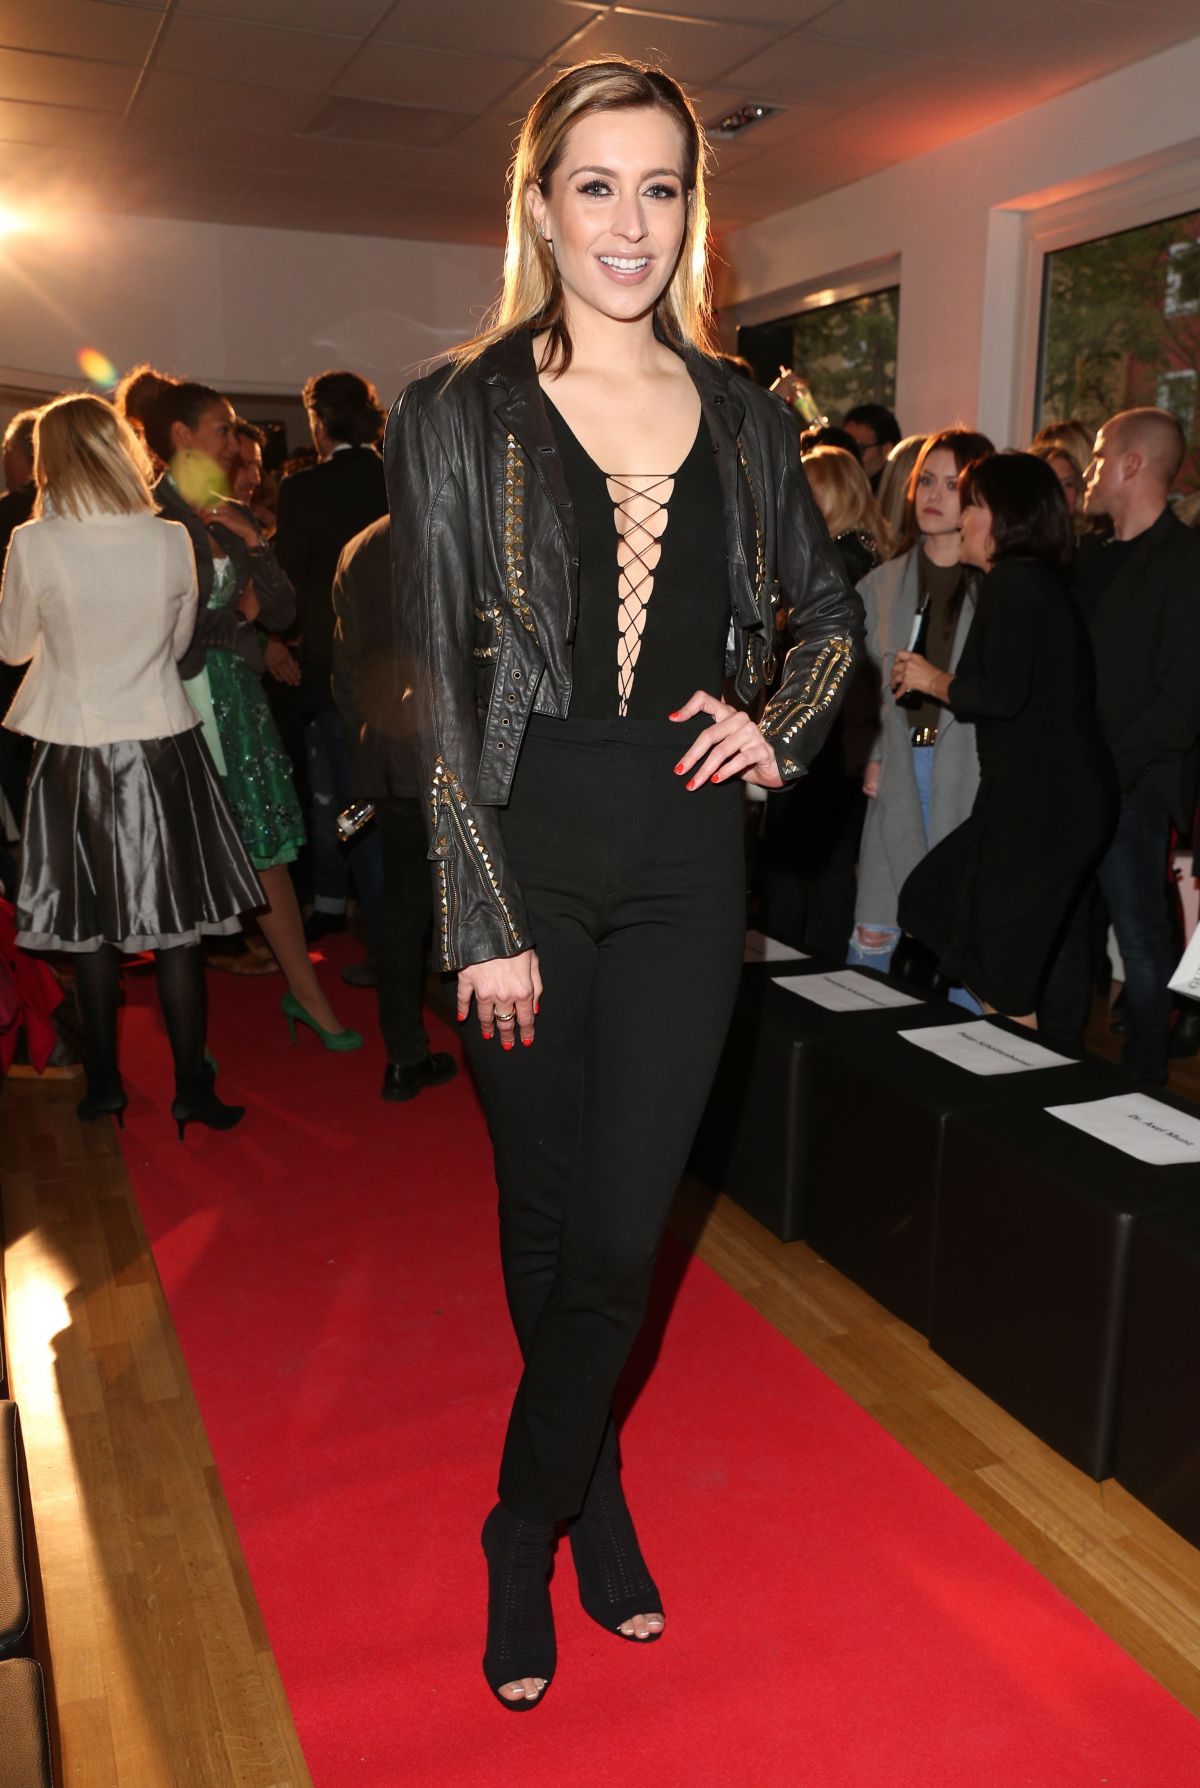 VERENA KERTH at Just Eve Spring Fashion Show in Munich 04/19/2017   verena-kerth-at-just-eve-spring-fashion-show-in-munich-04-19-2017_2